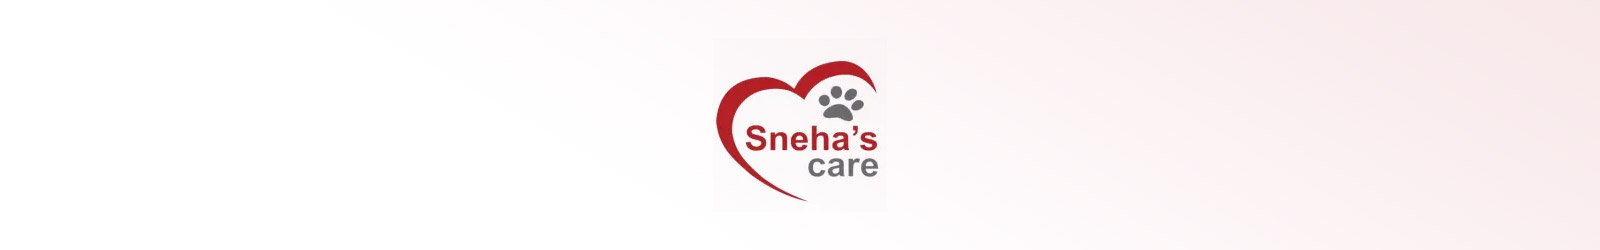 Sneha's Care Won Two Cases